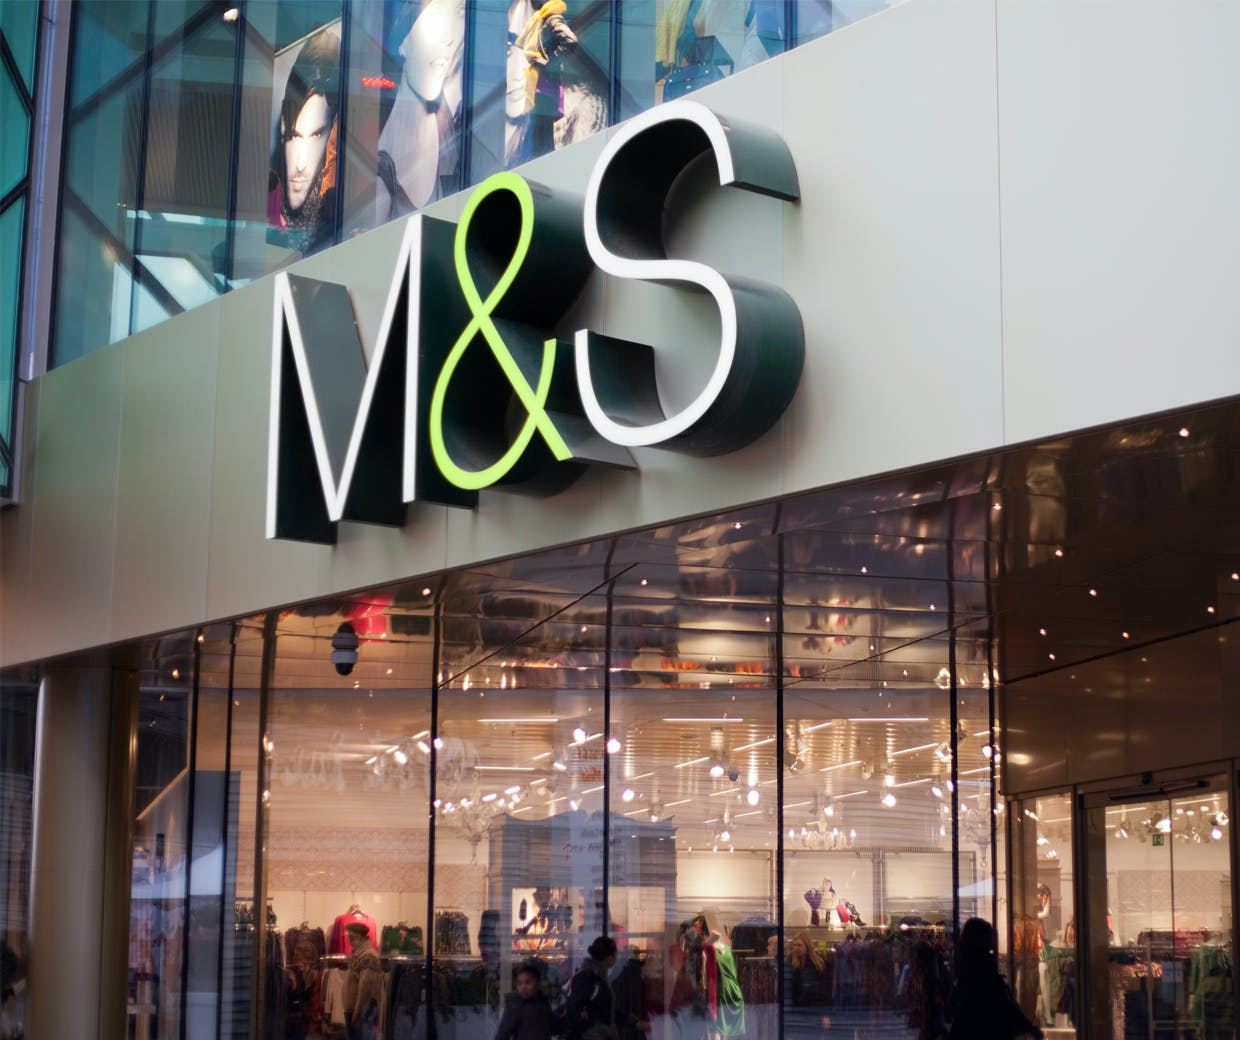 M&S boss: We must get back to being a value retailer